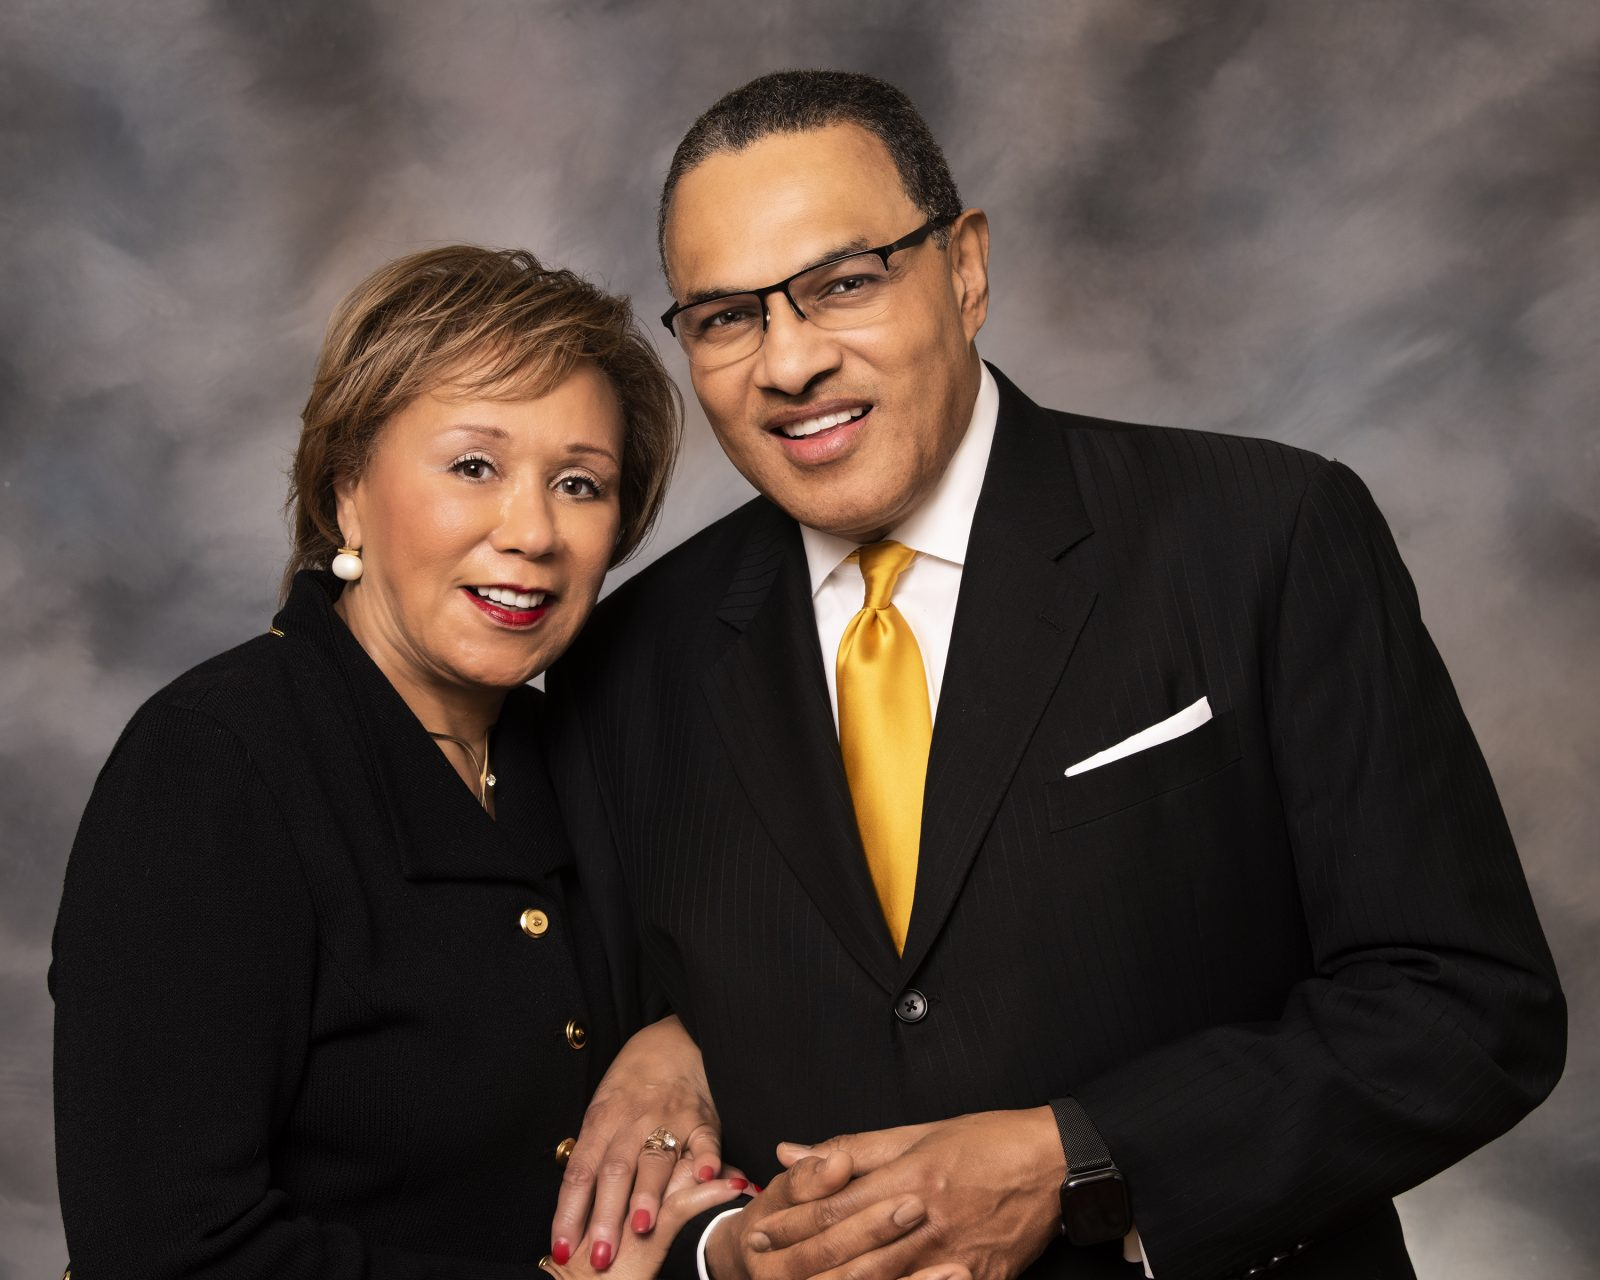 Jacqueline Hrabowski and Freeman A. Hrabowski III, who both volunteered for Phase 3 trials of Moderna's COIVID-19 vaccine.